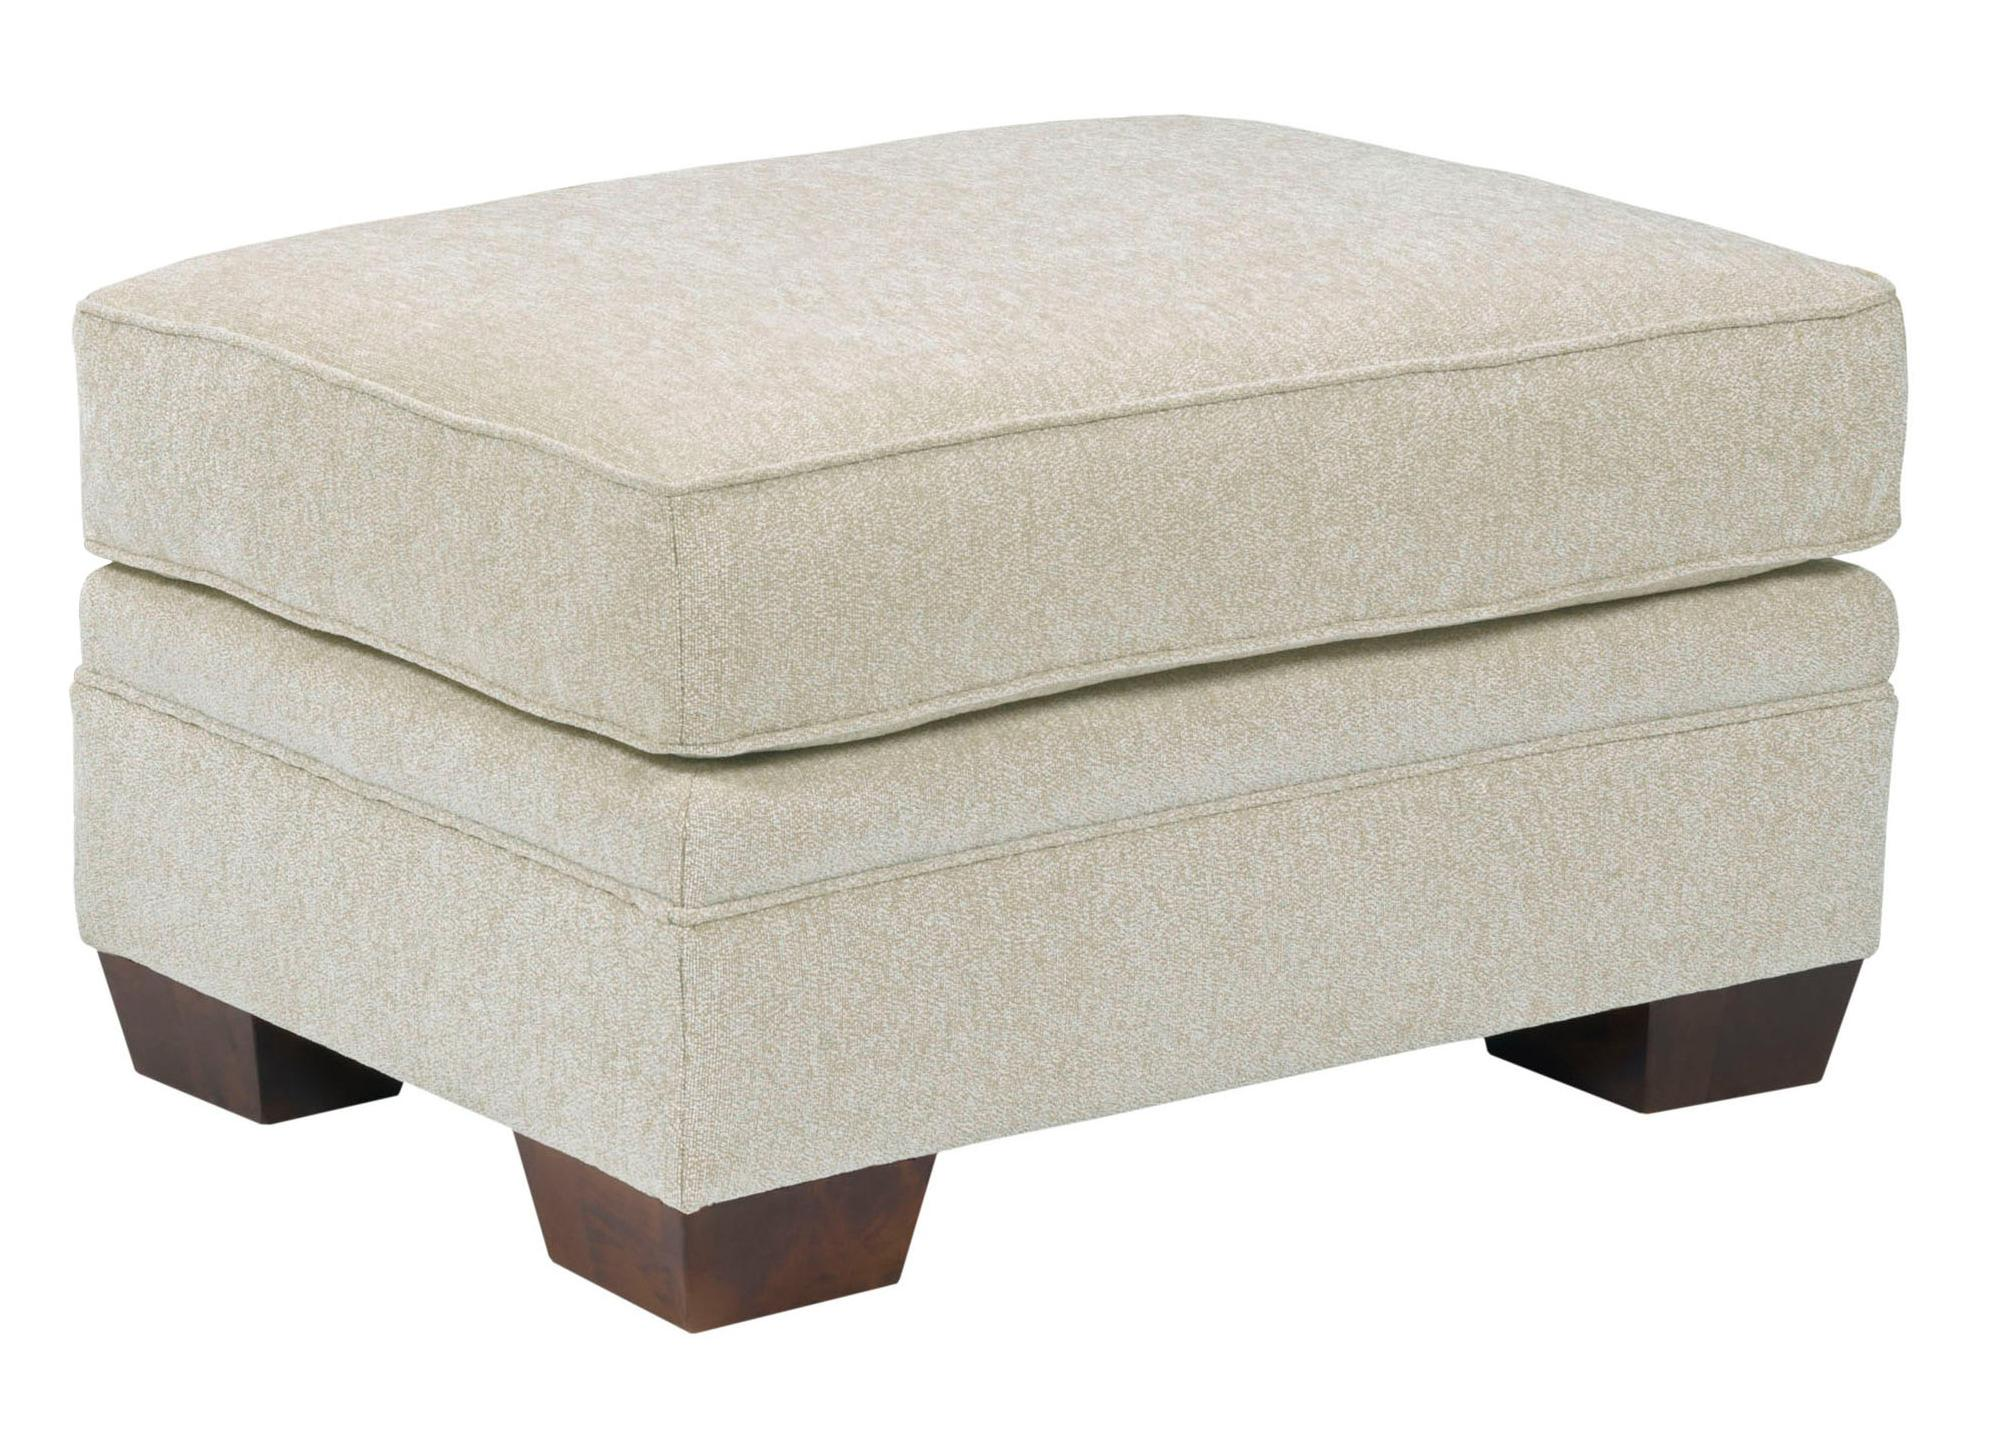 Broyhill Furniture Landon Transitional Ottoman - Item Number: 6608-5